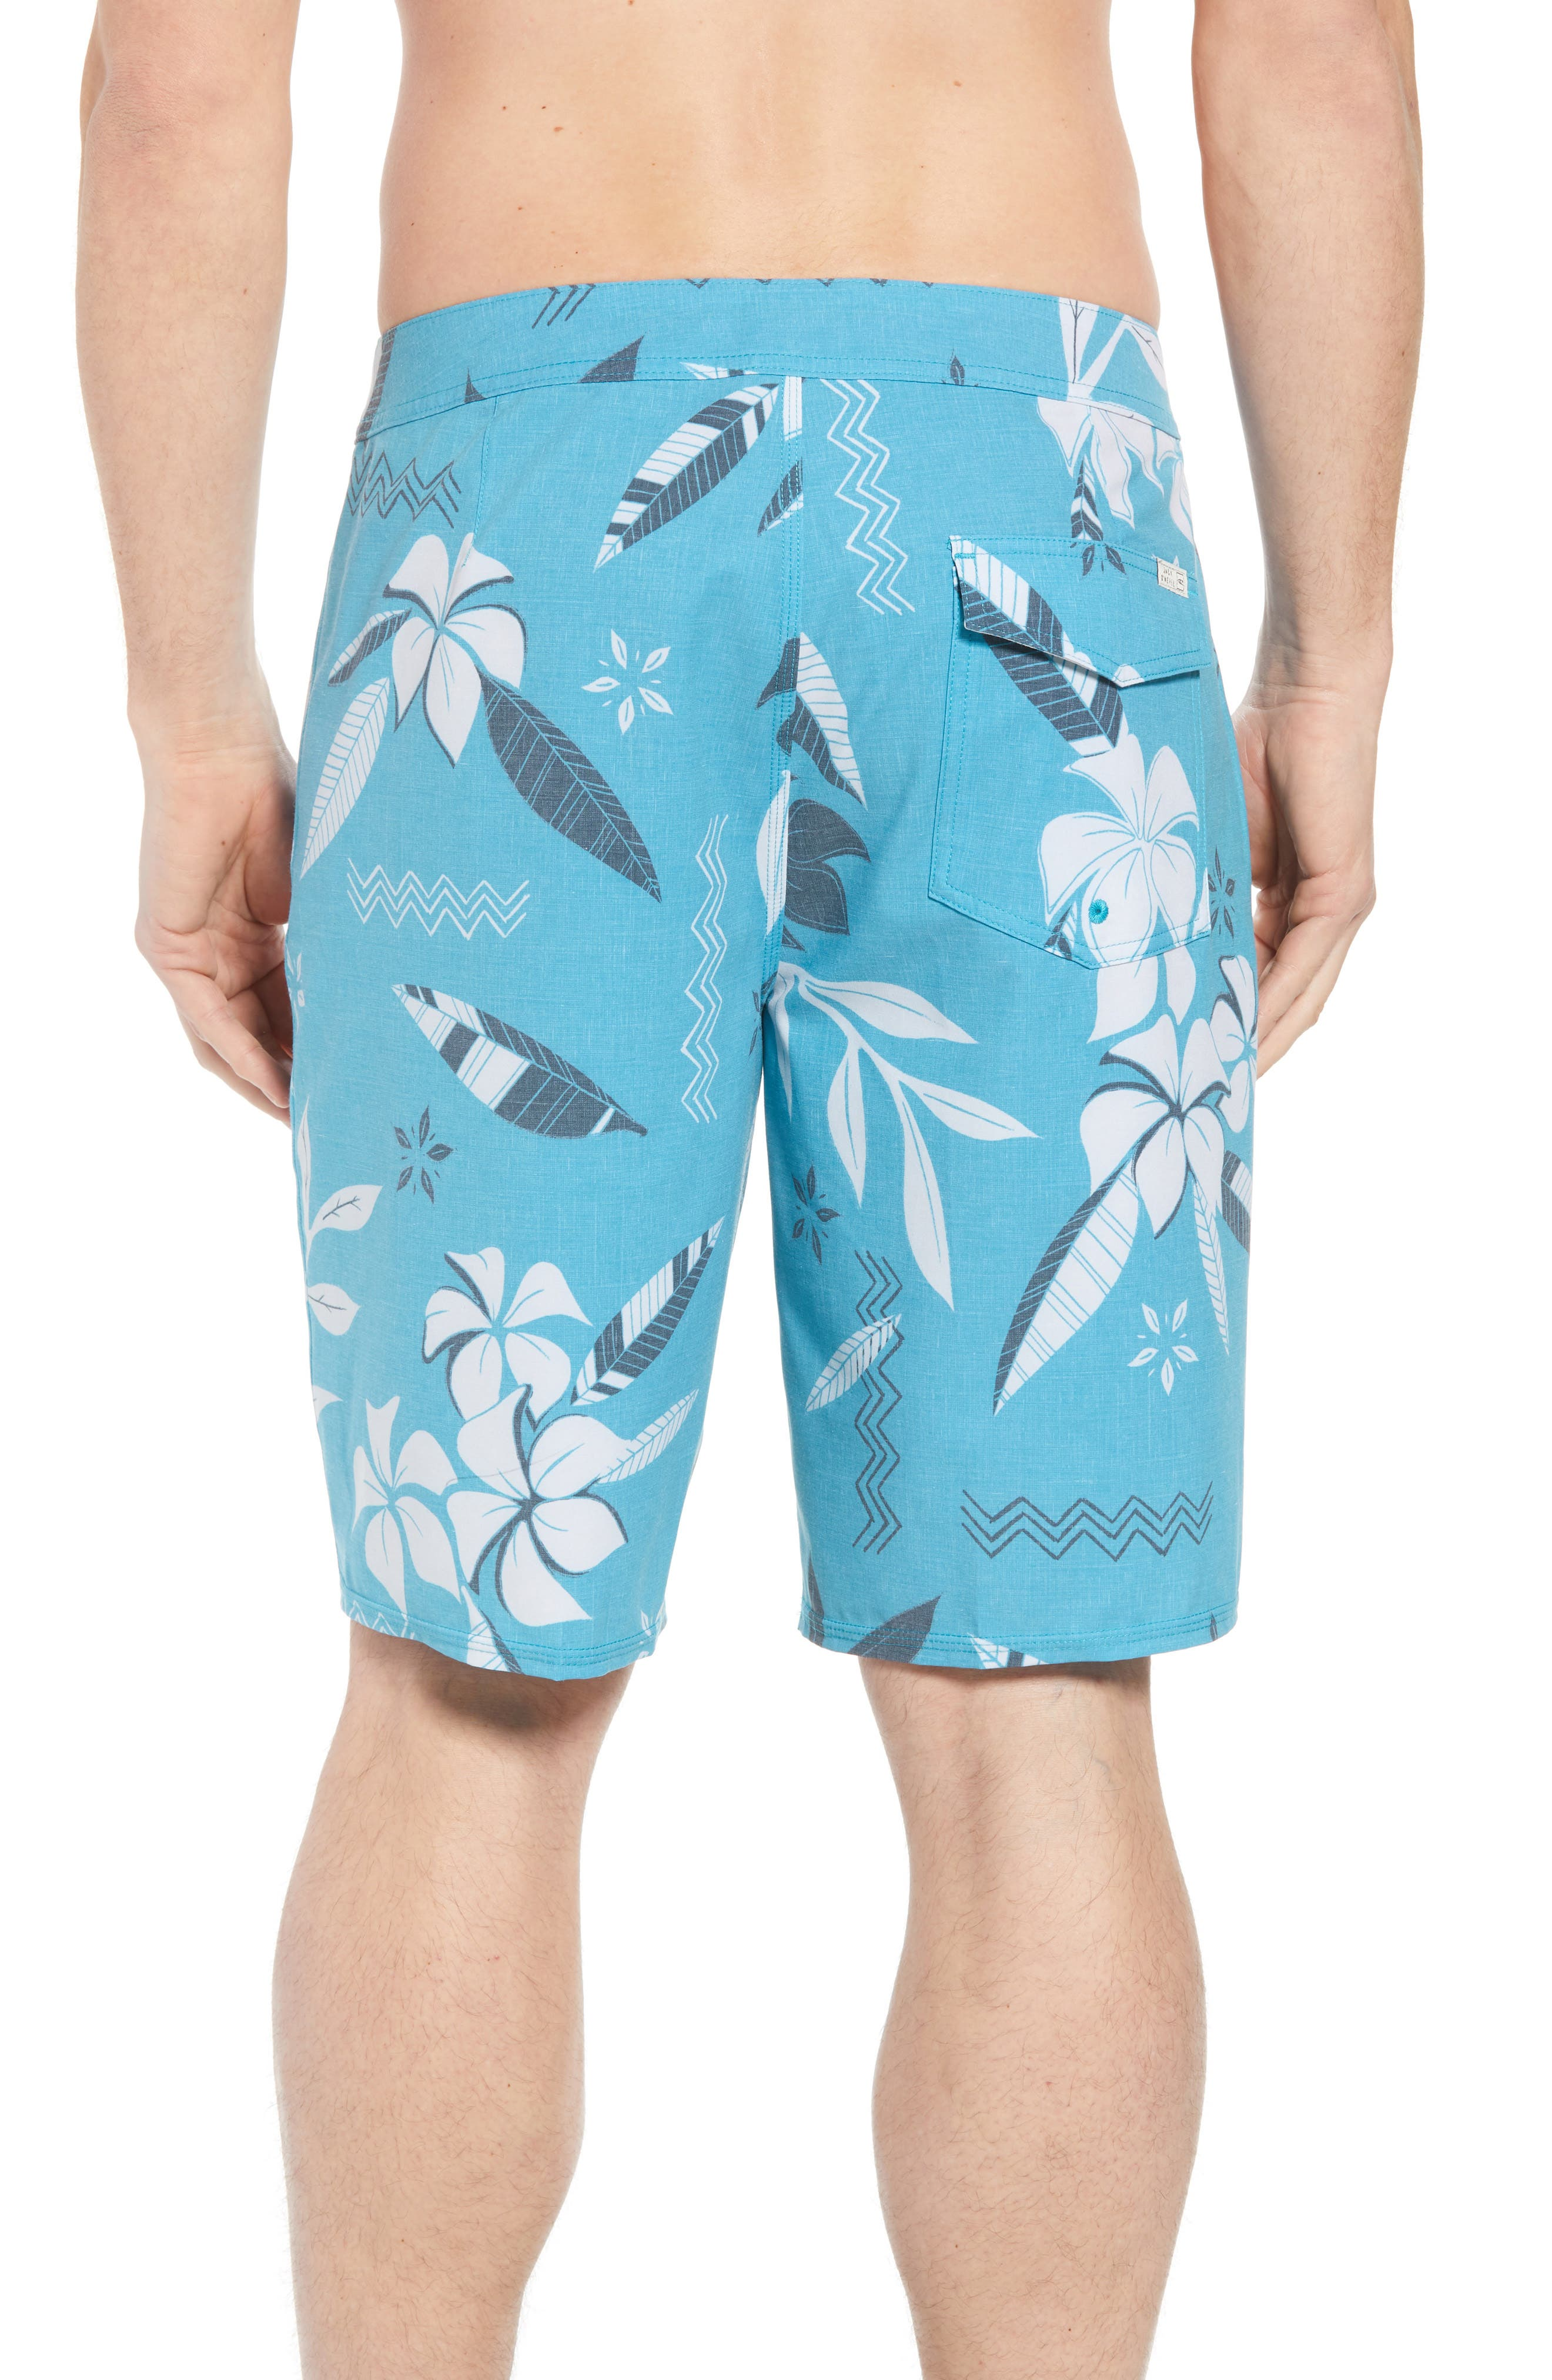 Maui Board Shorts,                             Alternate thumbnail 5, color,